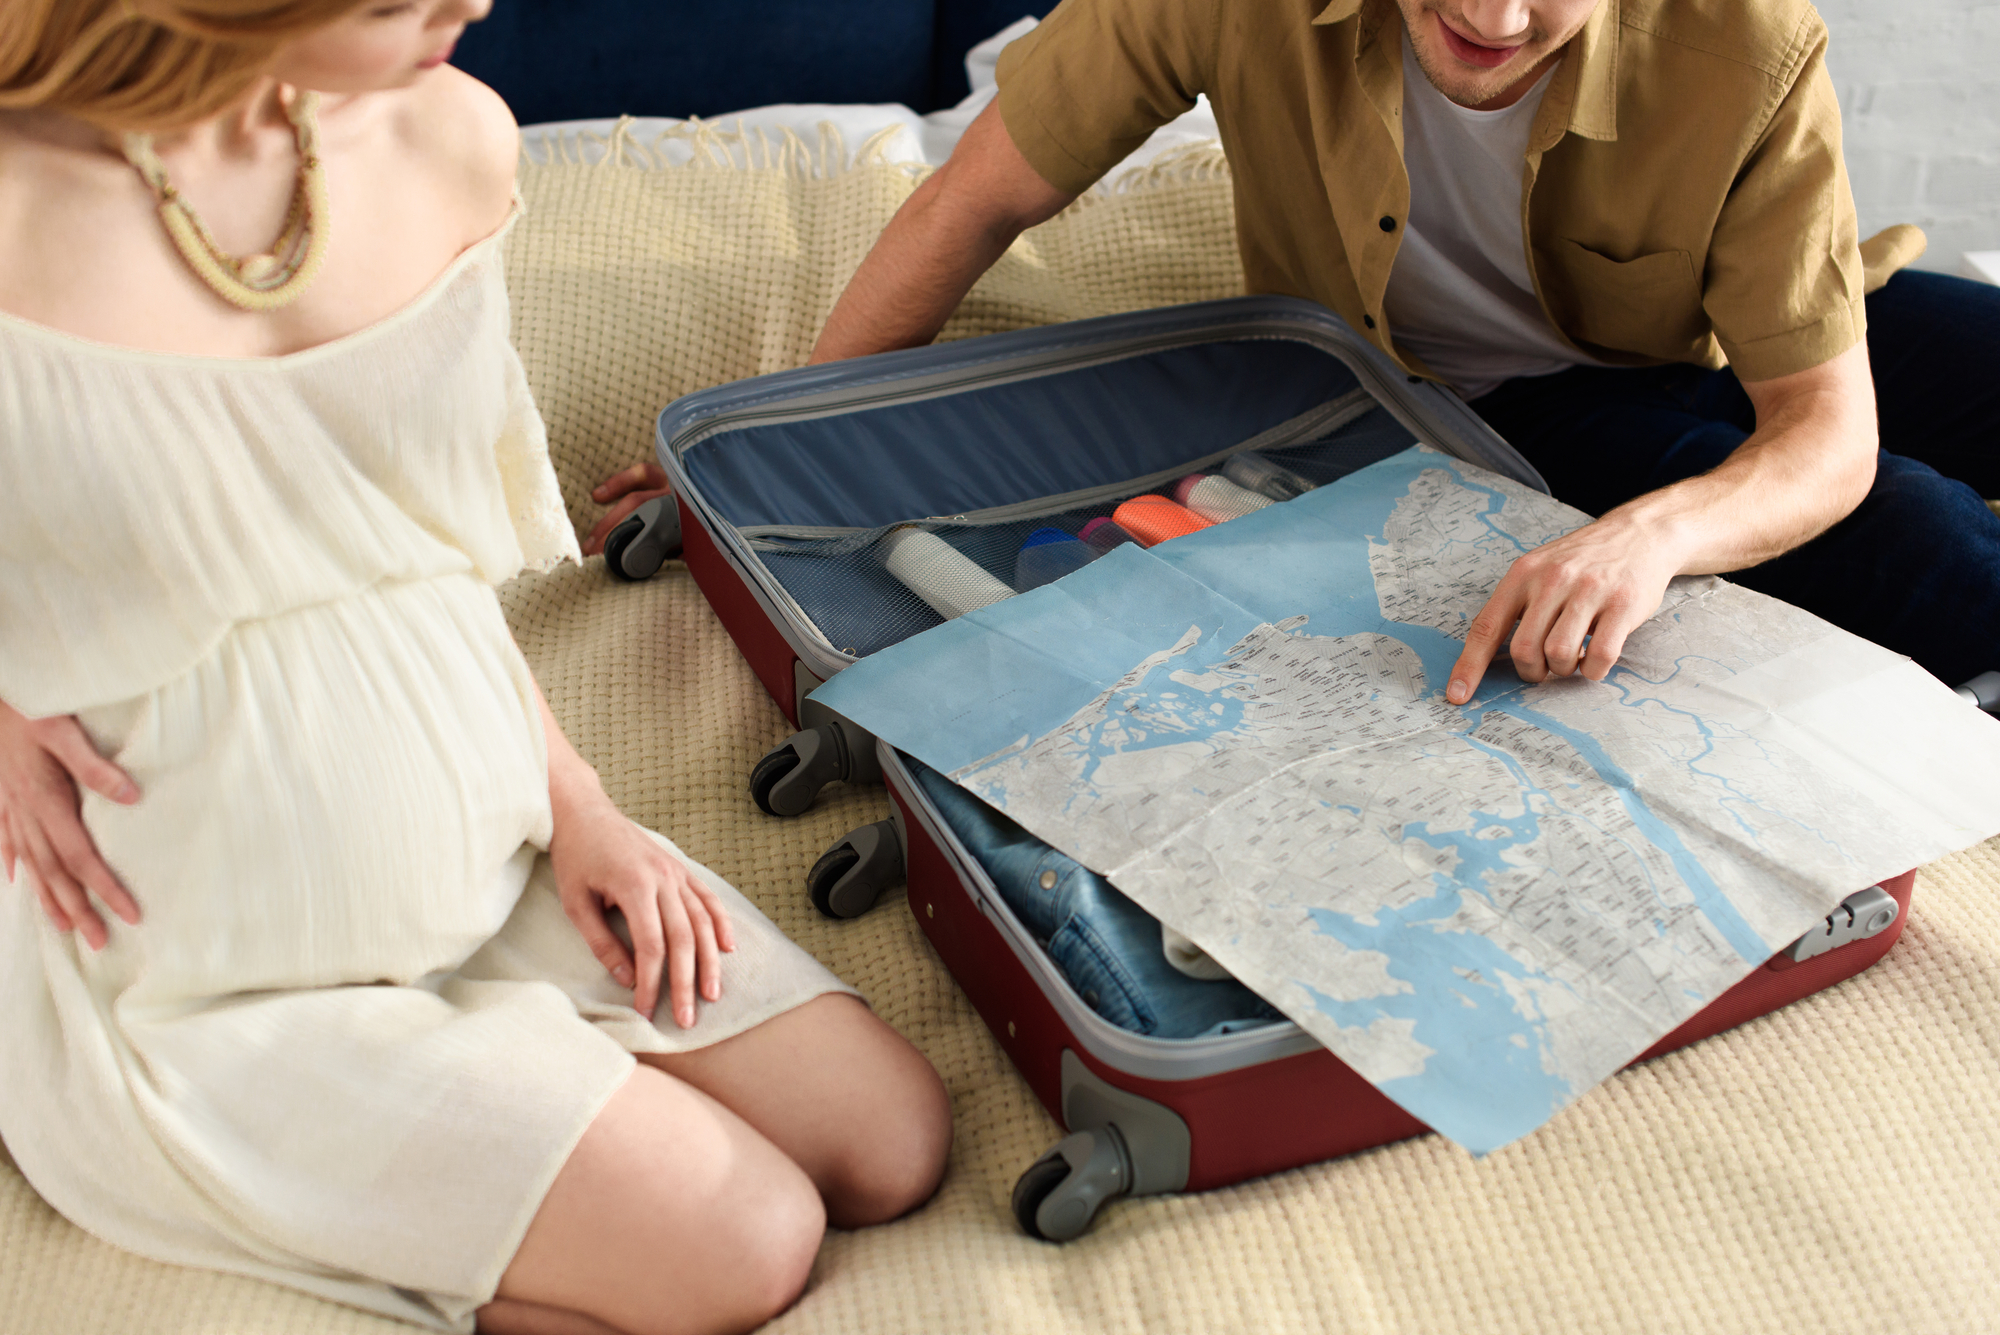 Couple packing for a babymoon vacation